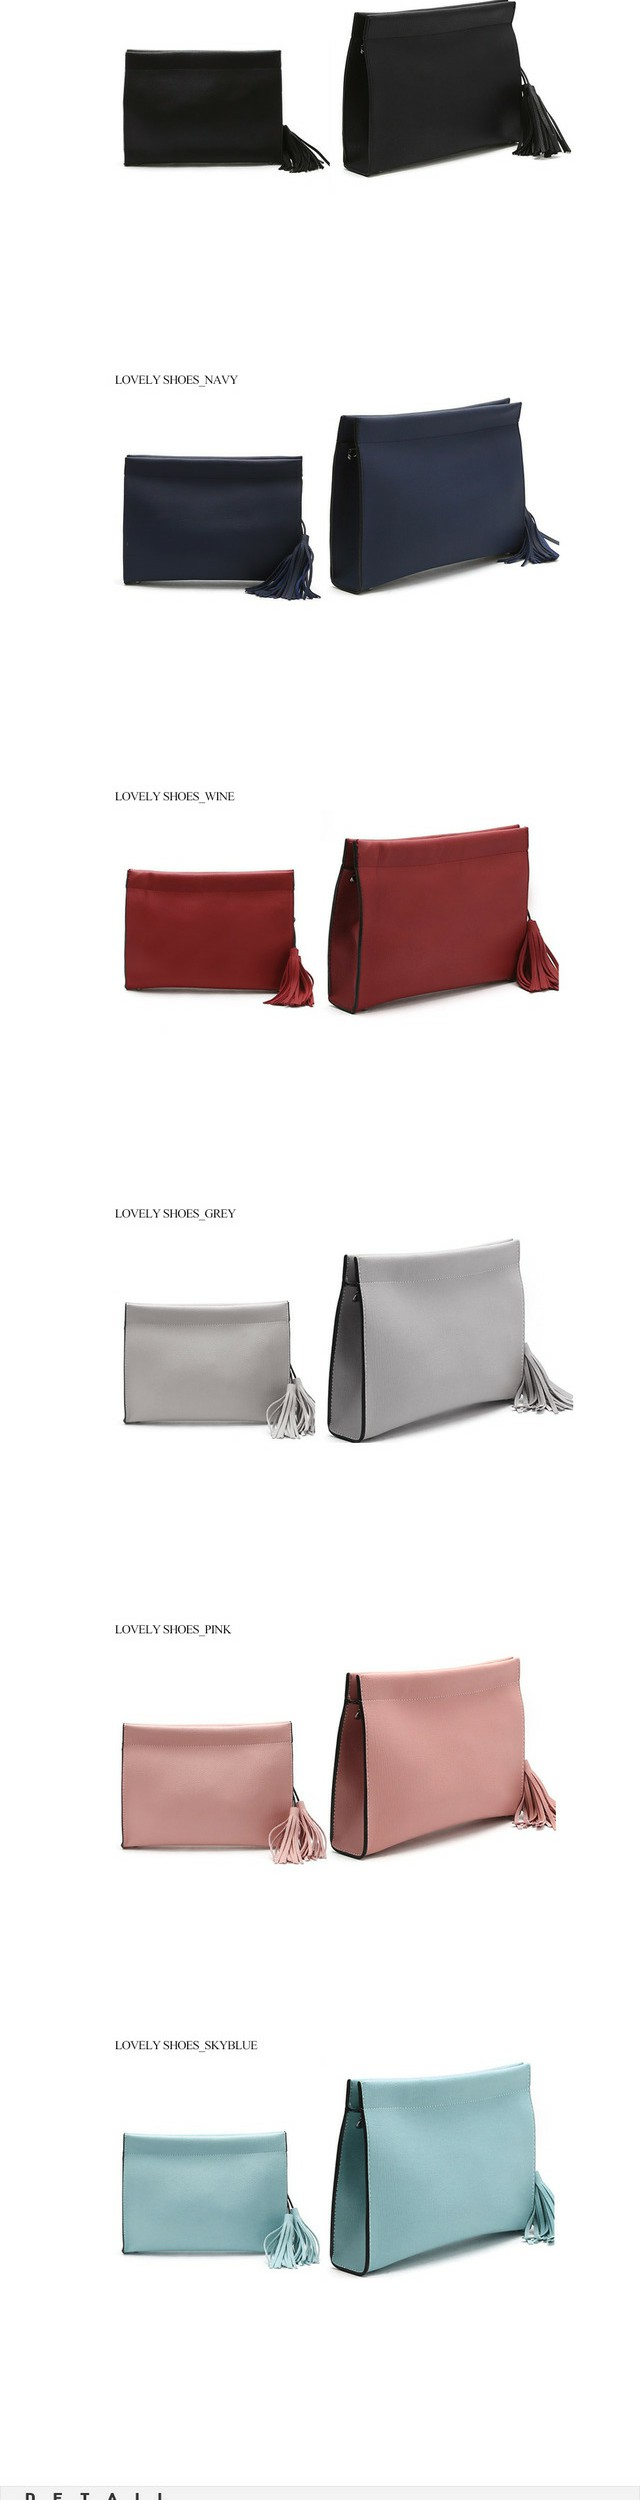 Simpl clutch bag